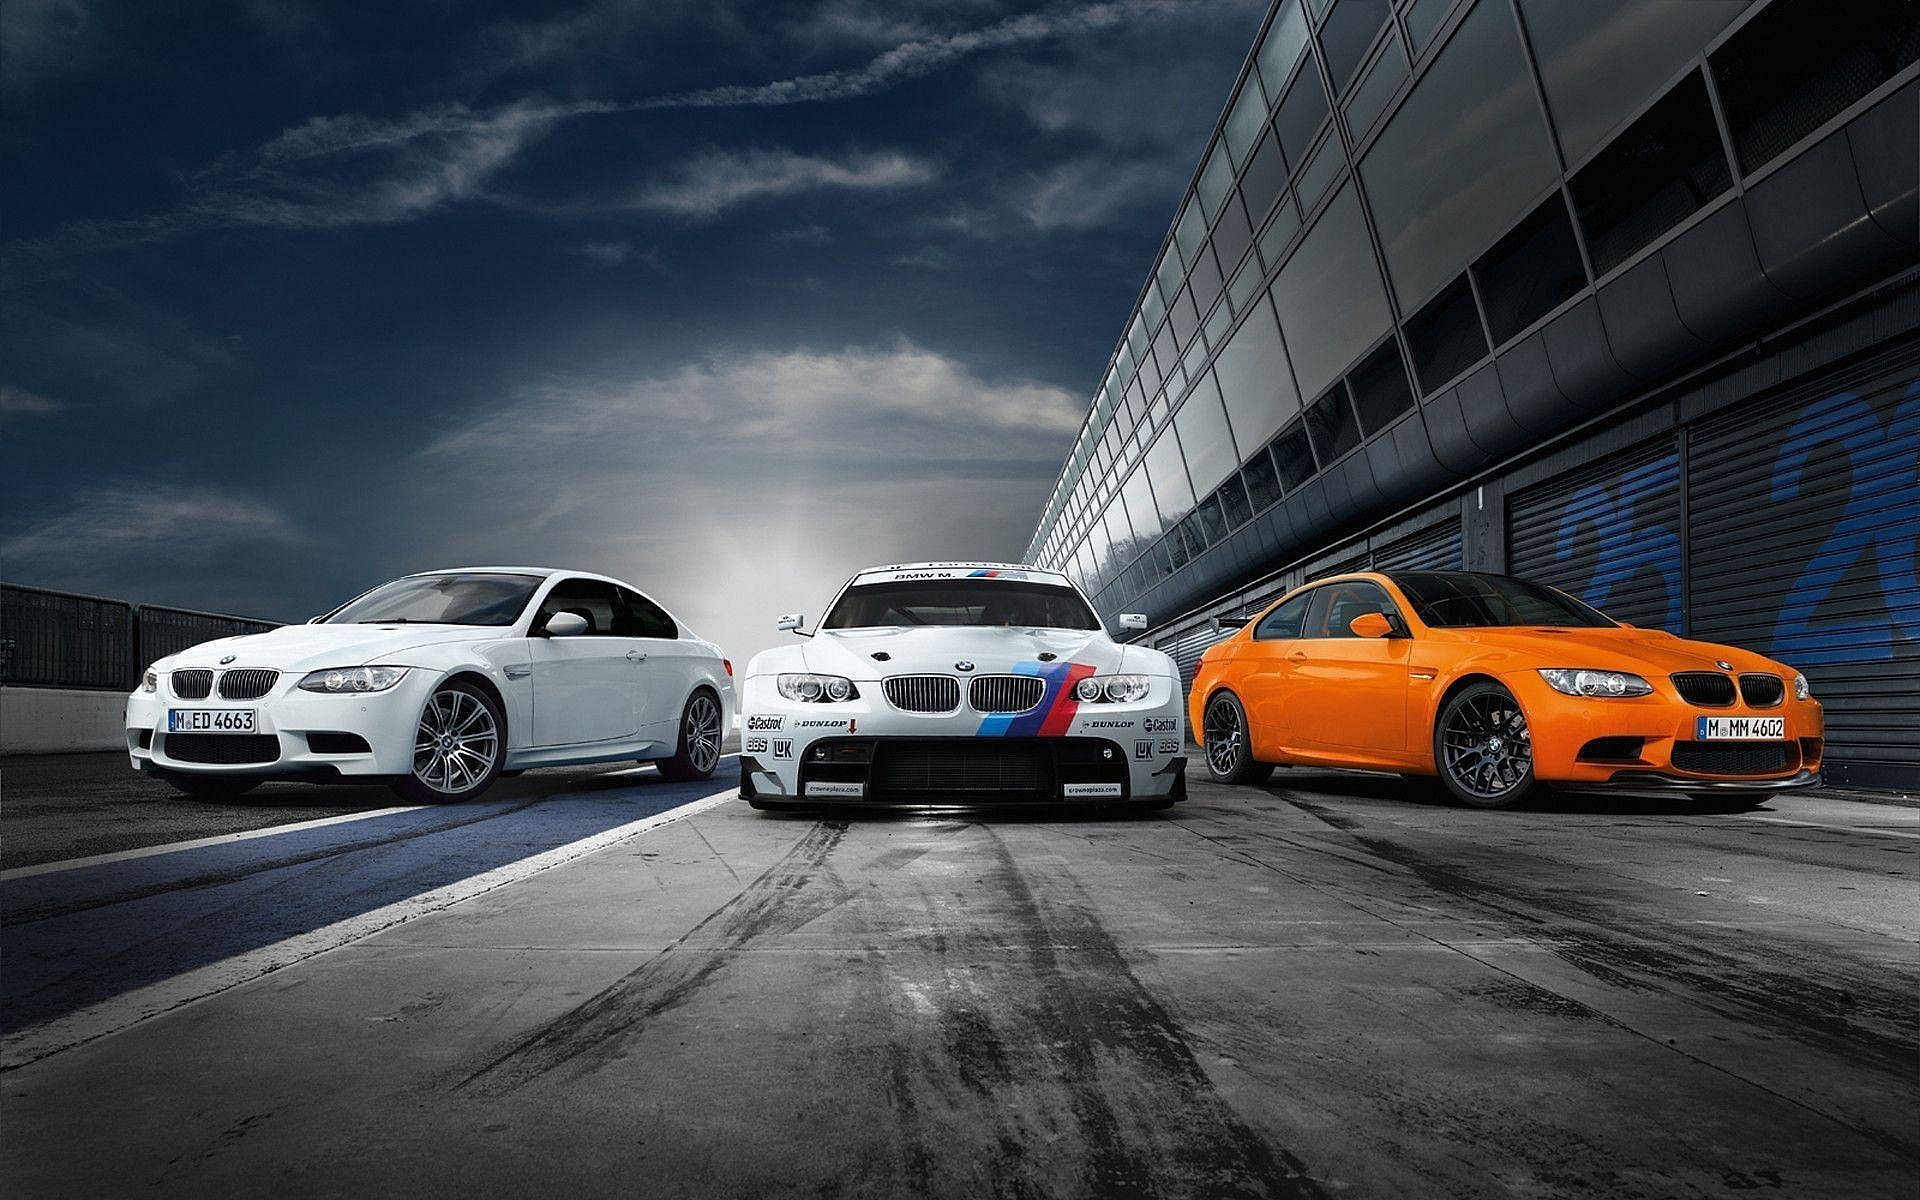 1920x1200 Bmw m wallpapers tapete höhle m3 iphone - small